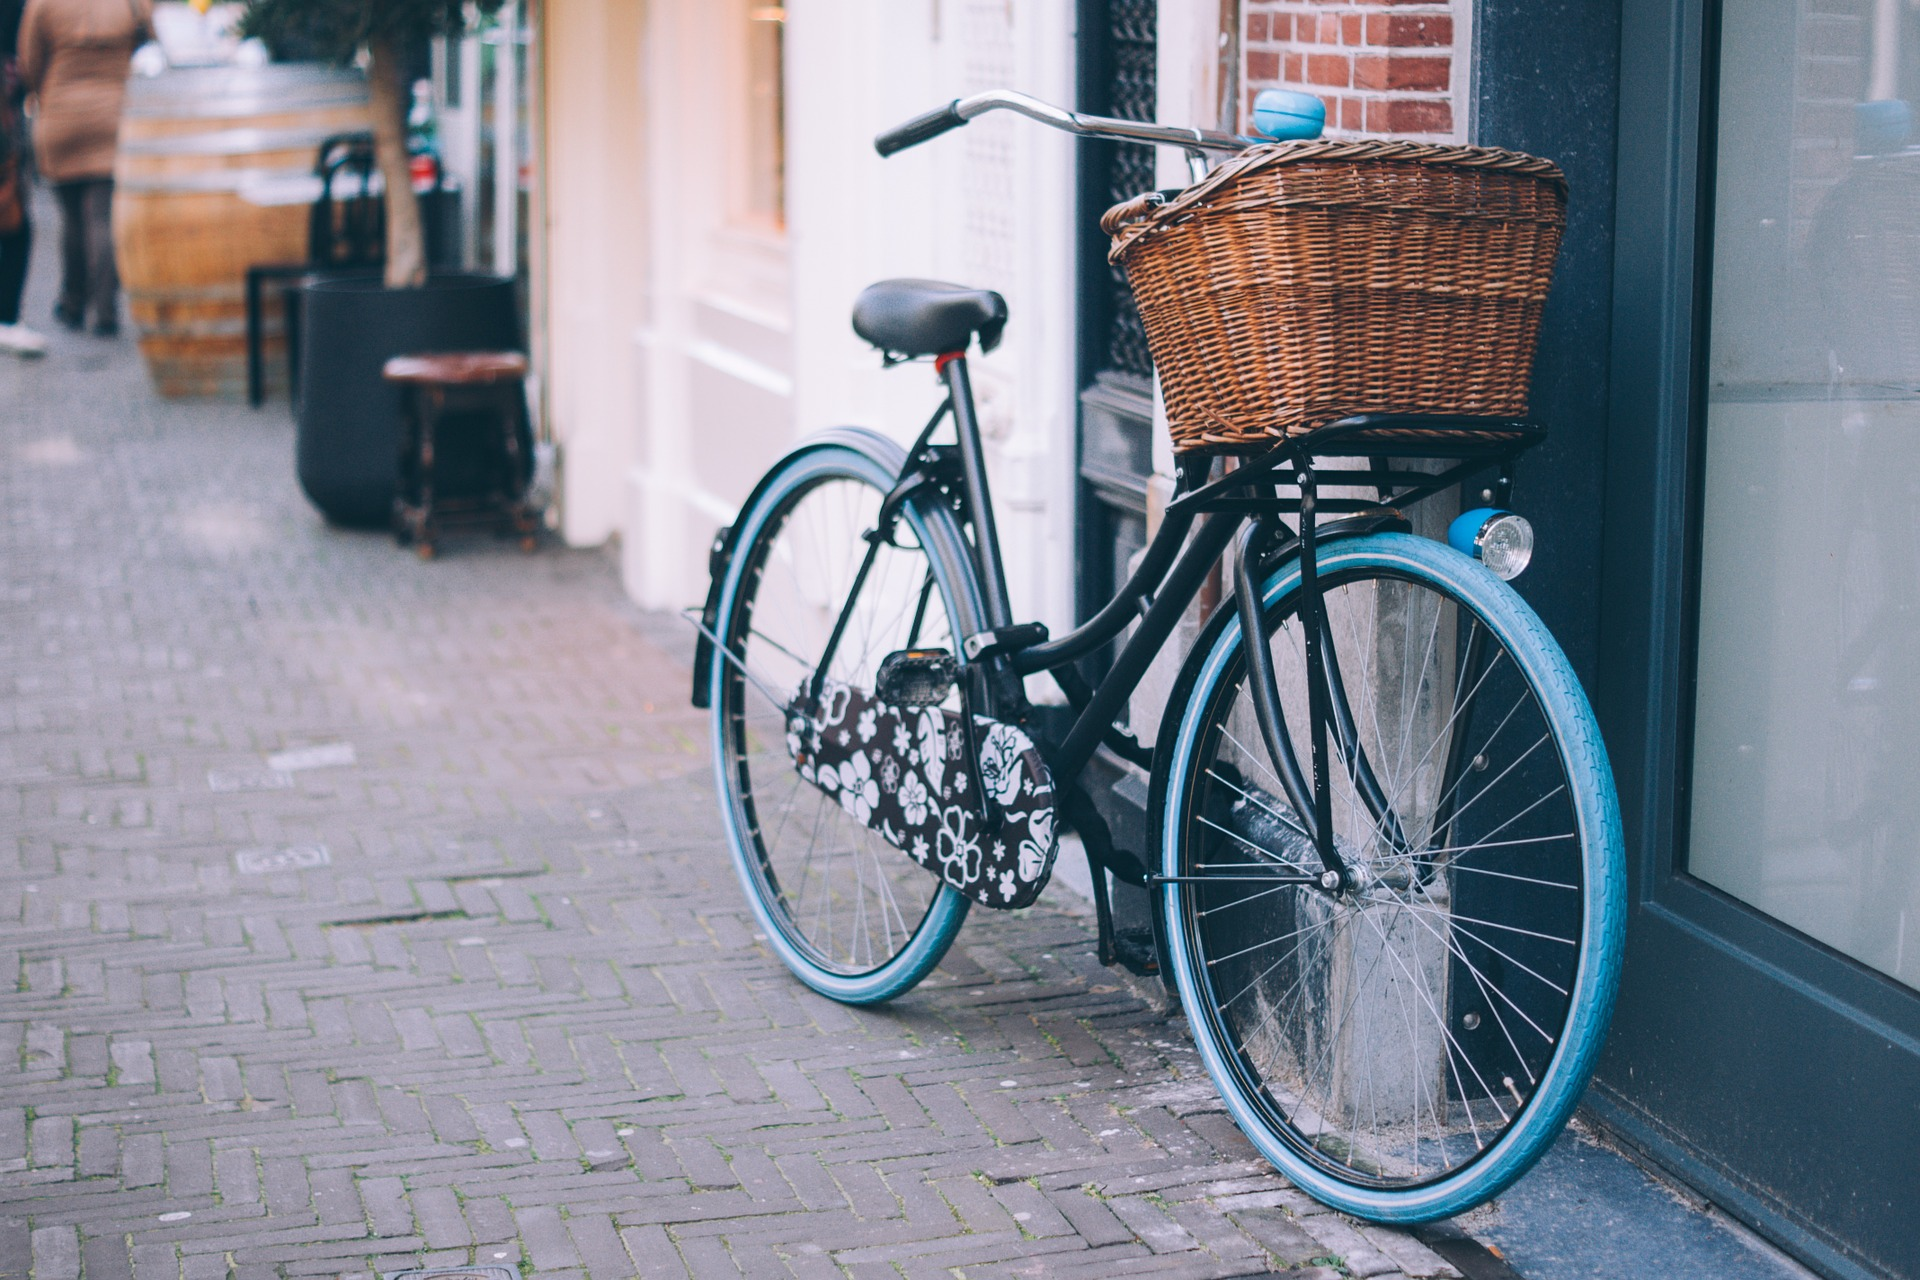 photo showing a bicycle with wicker pannier leaning against a wall in a street, cafe bar in the background